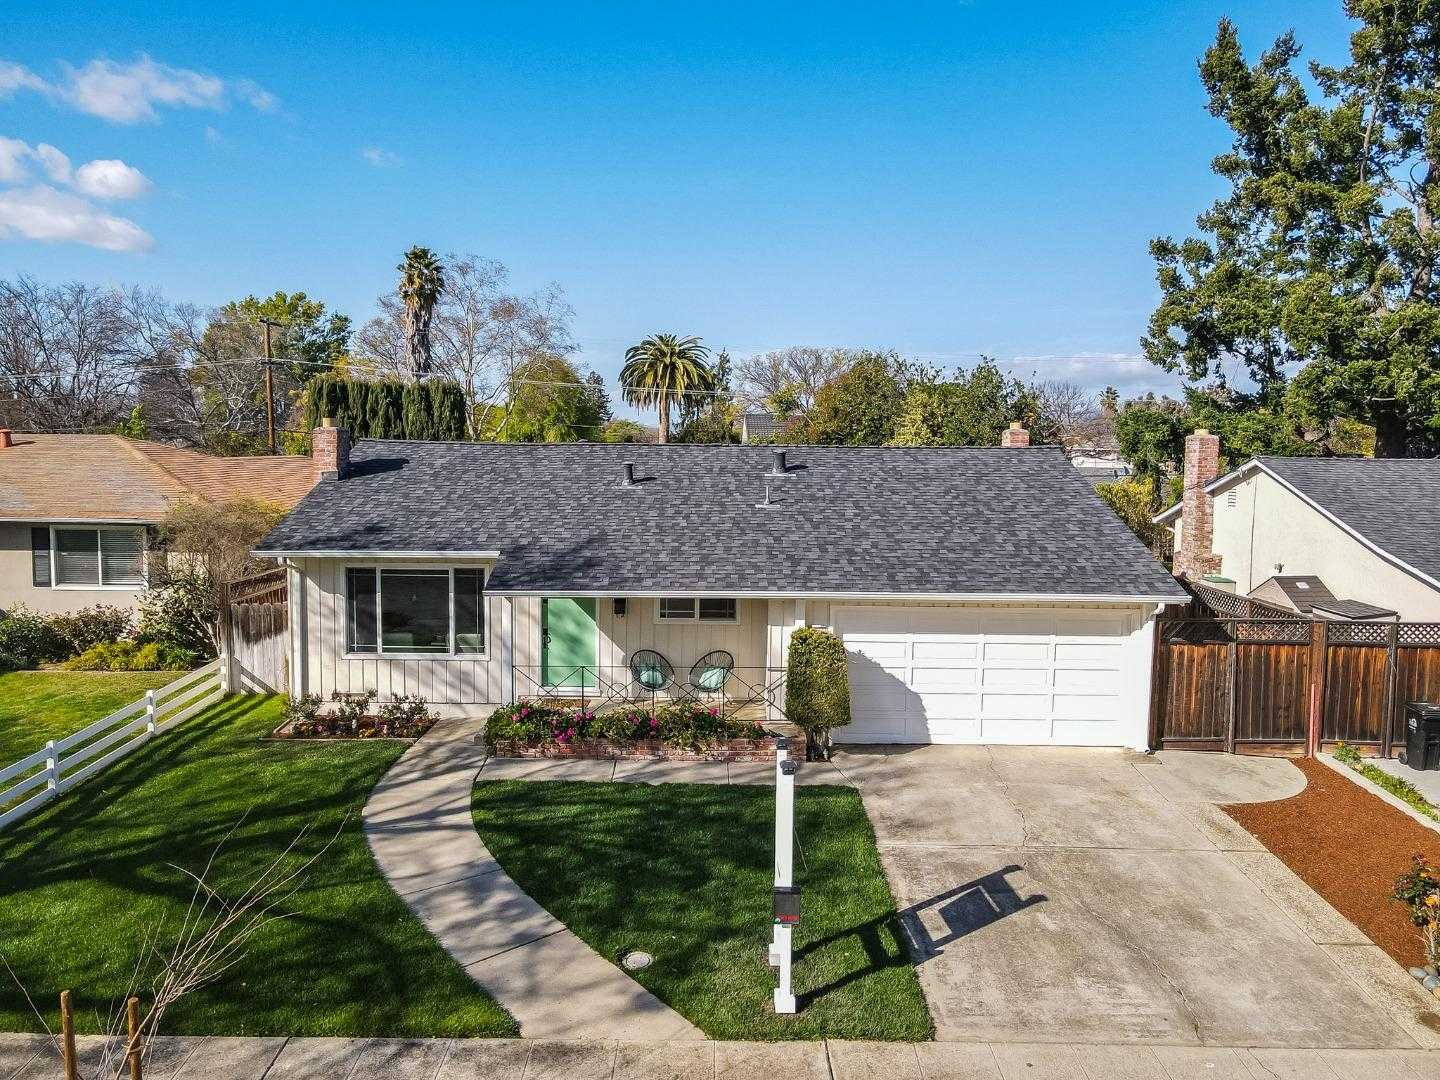 $1,898,000 - 4Br/2Ba -  for Sale in San Jose